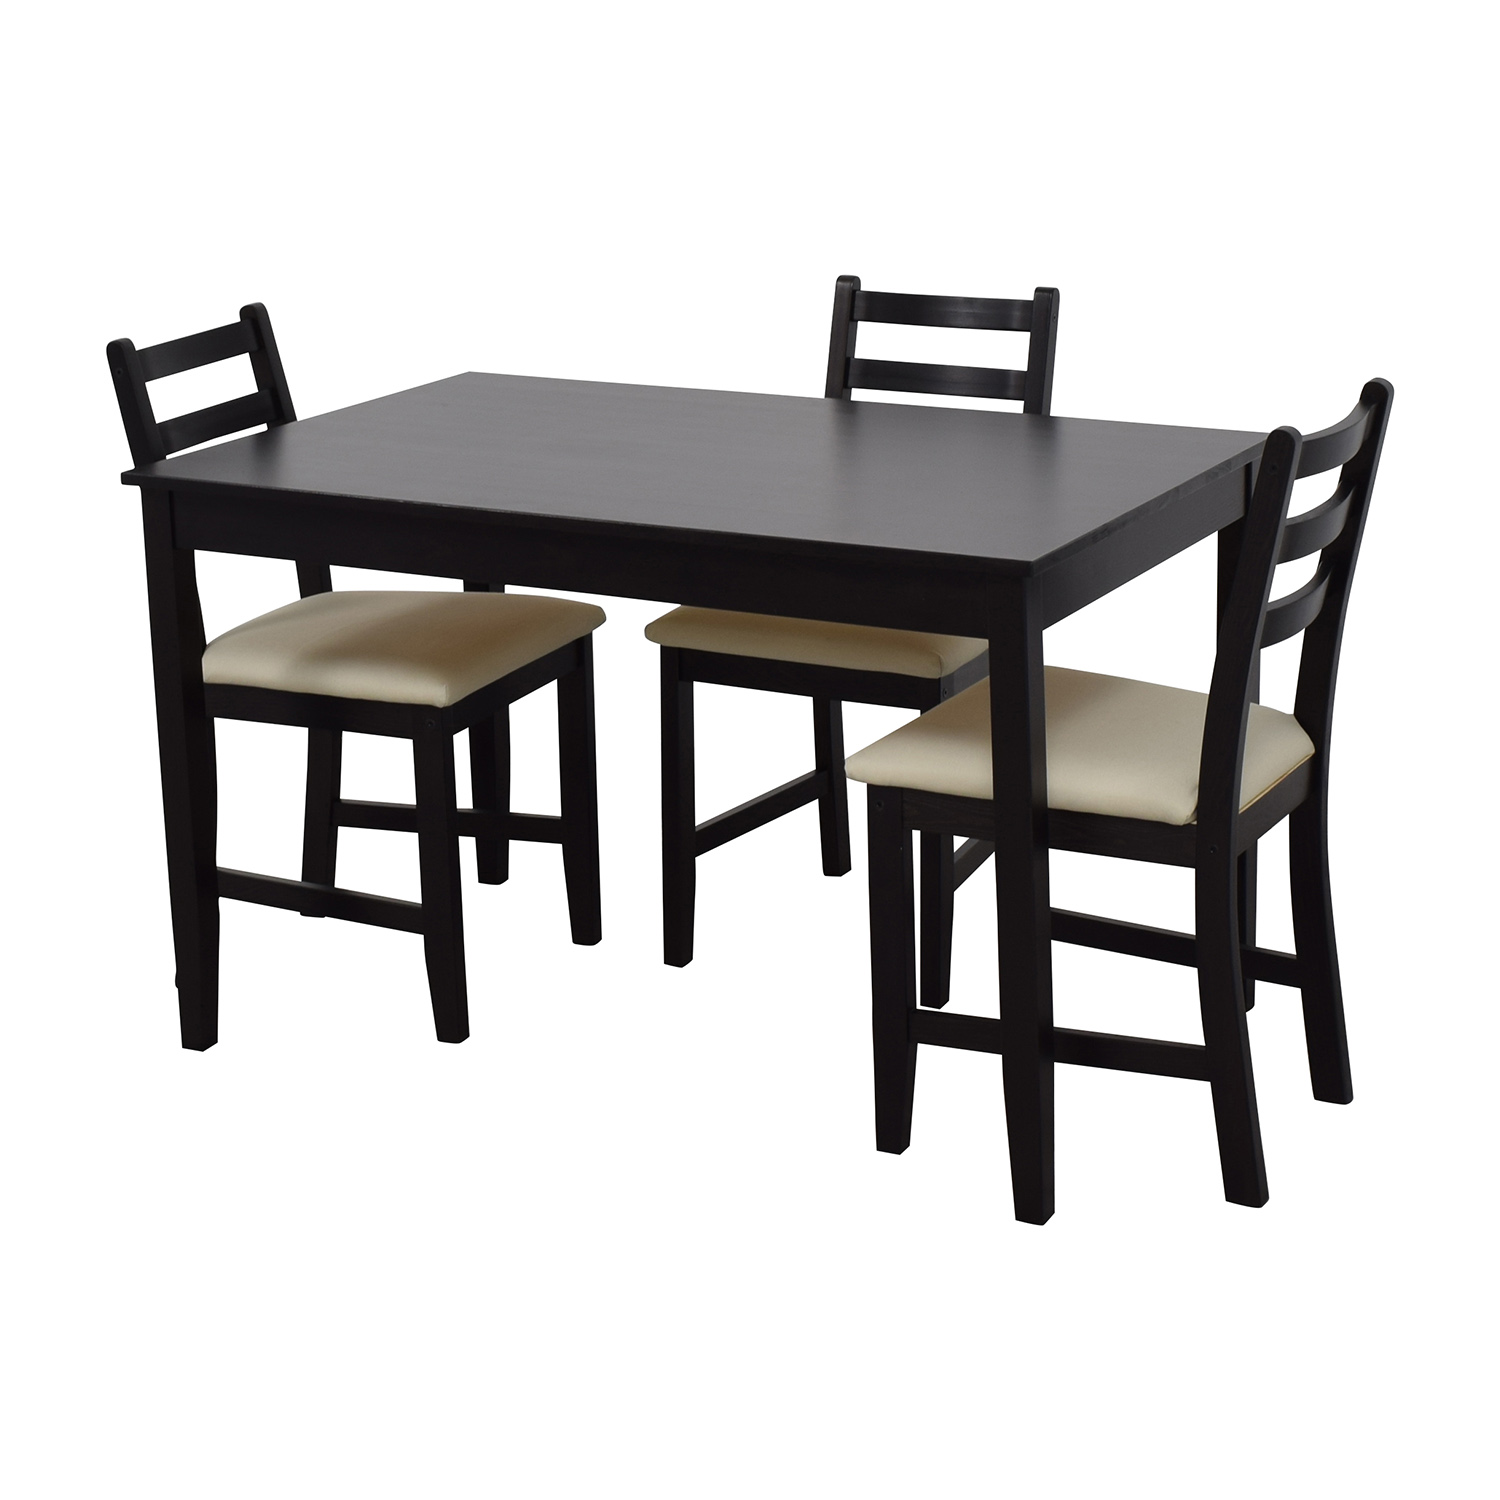 Ikea Wood Dining Set With Three Chairs Tables